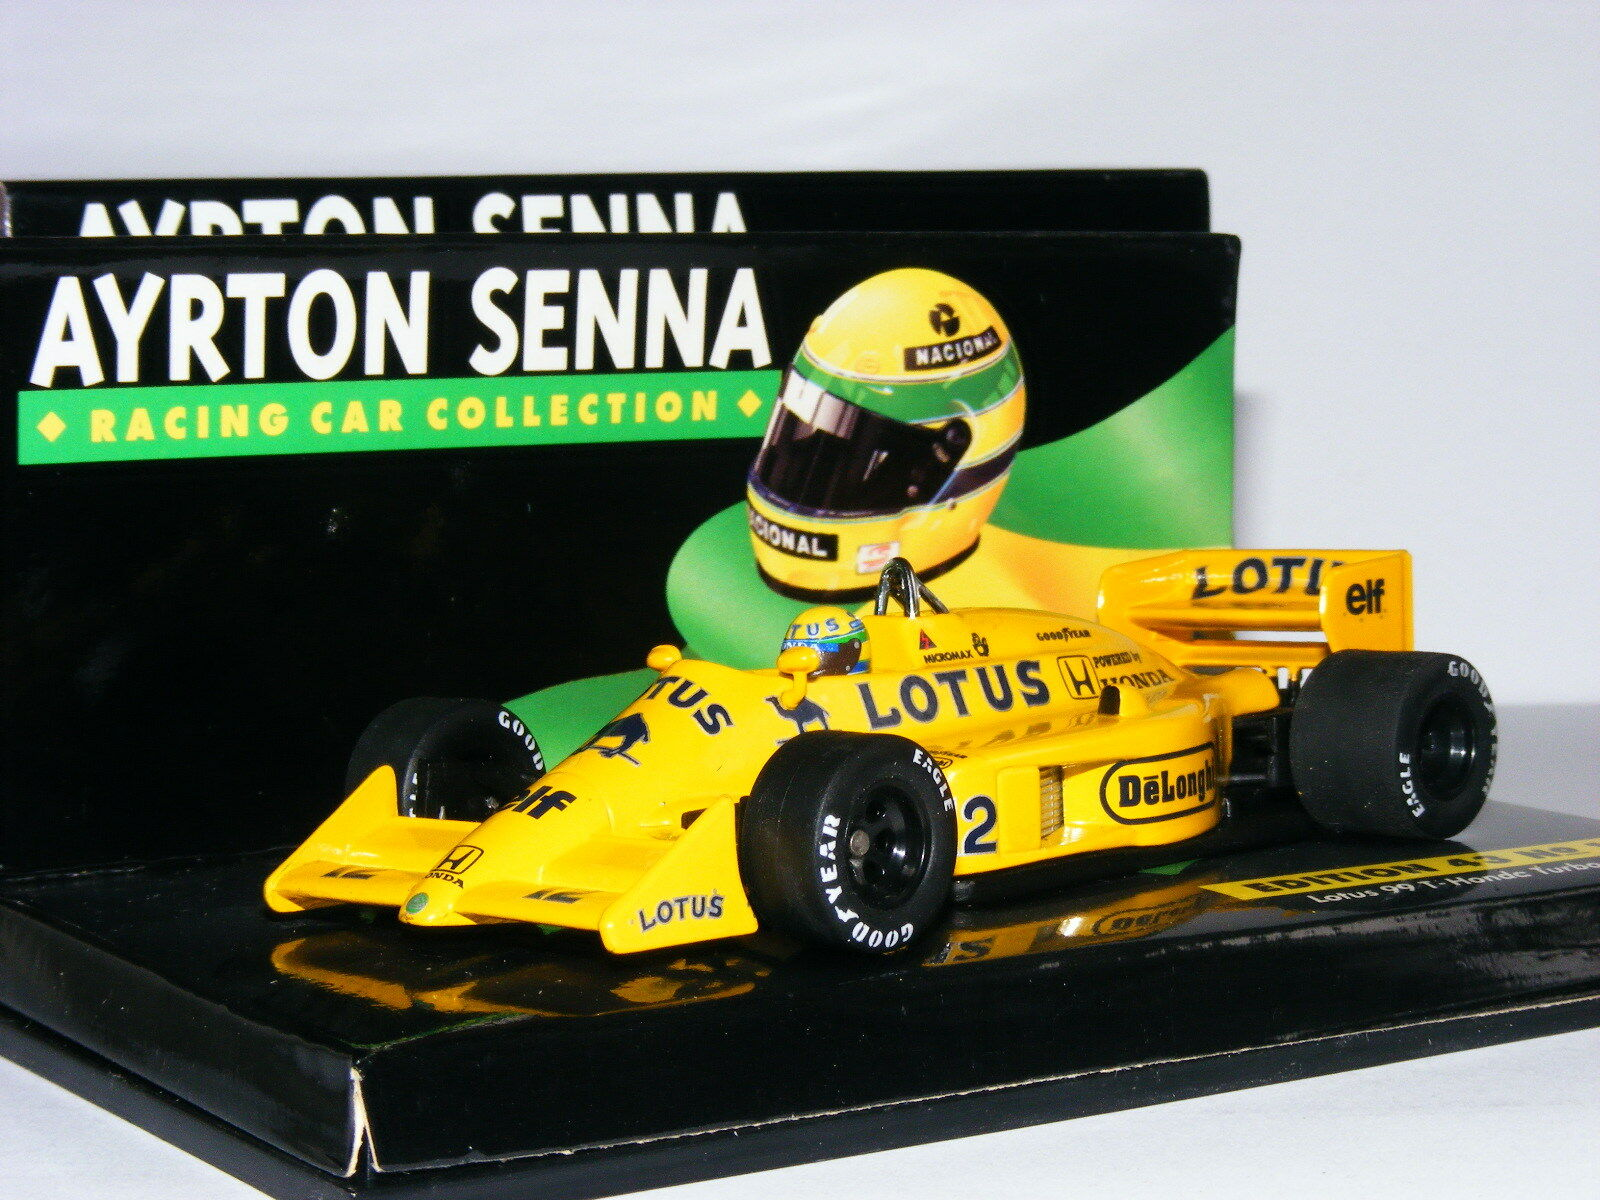 Minichamps LANG Lotus Renault 99T 1987 Ayrton Senna Collection Collection Collection No.15 1 43 c8c780